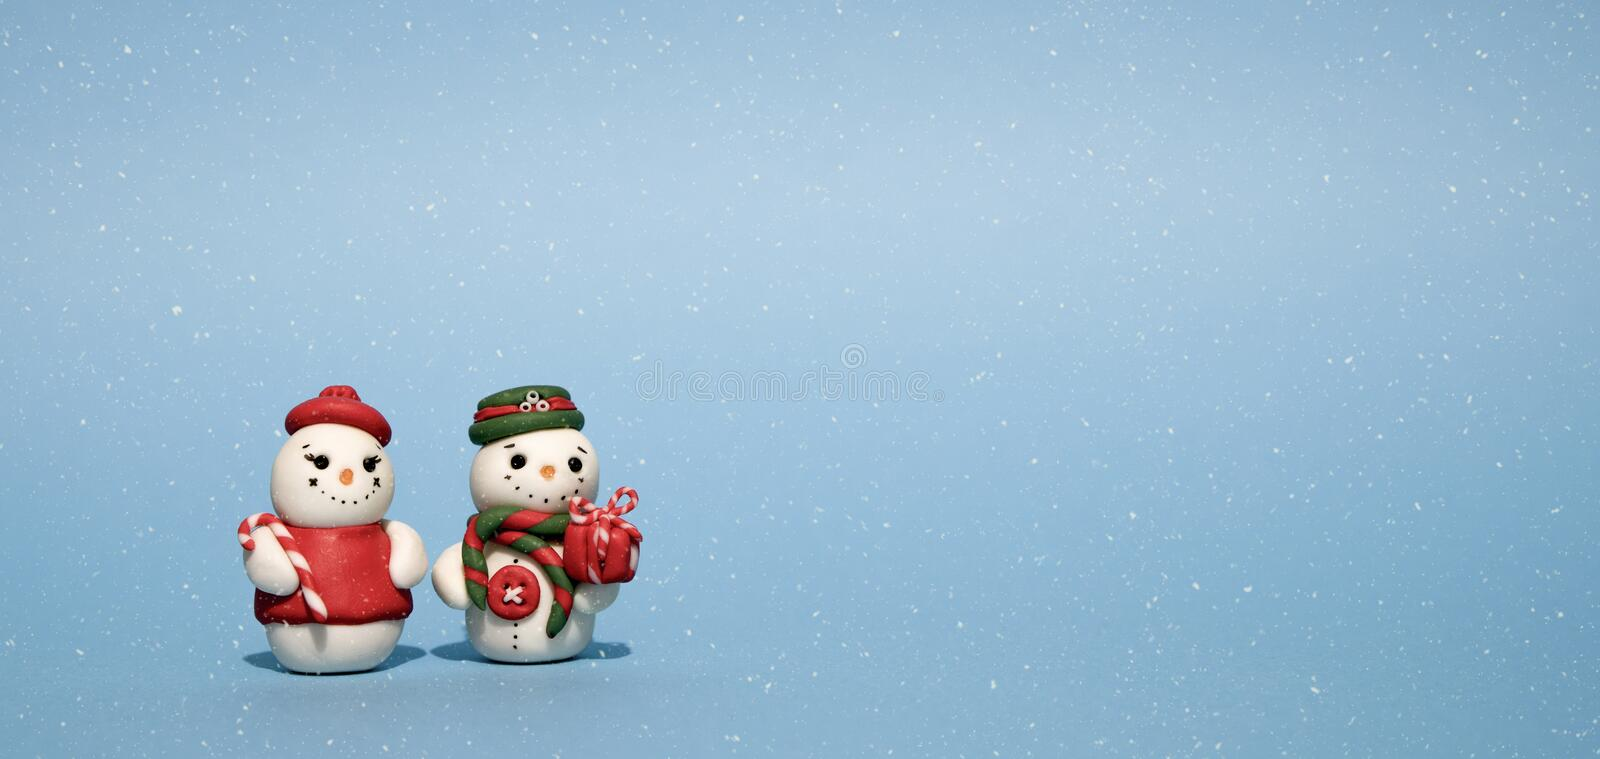 Winter Holidays background with a snowman, Gifts, snow and snowflakes royalty free stock photography